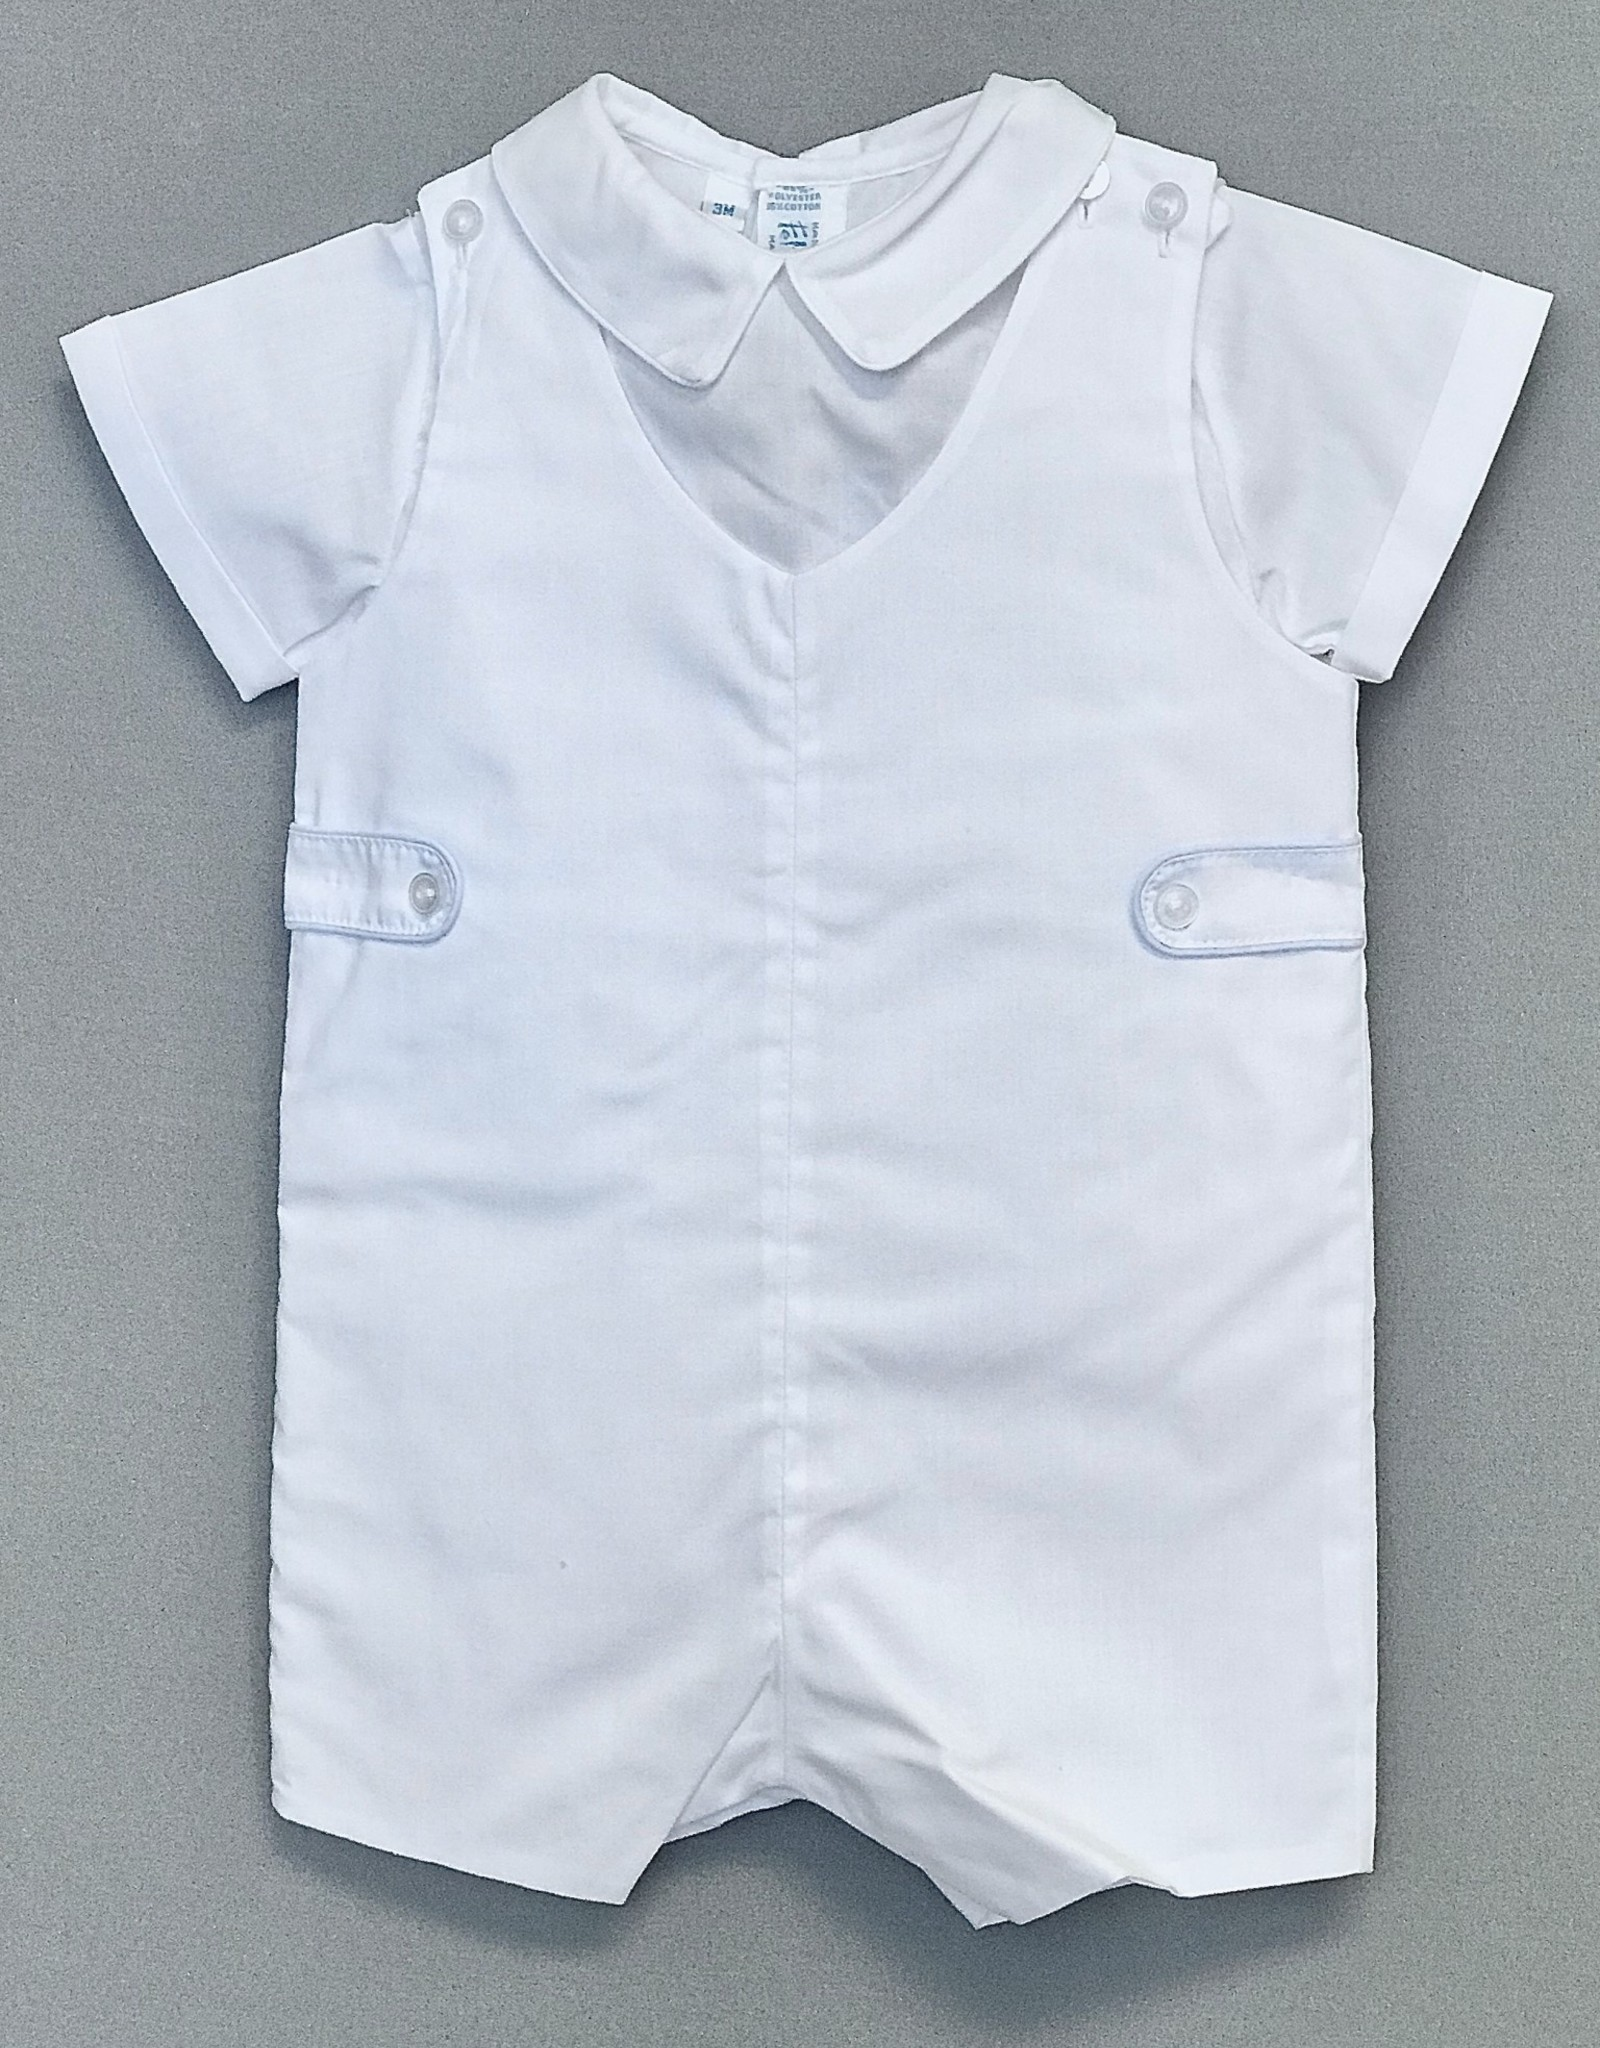 Feltman White piped Jon Jon 3m-24m Shirt not included